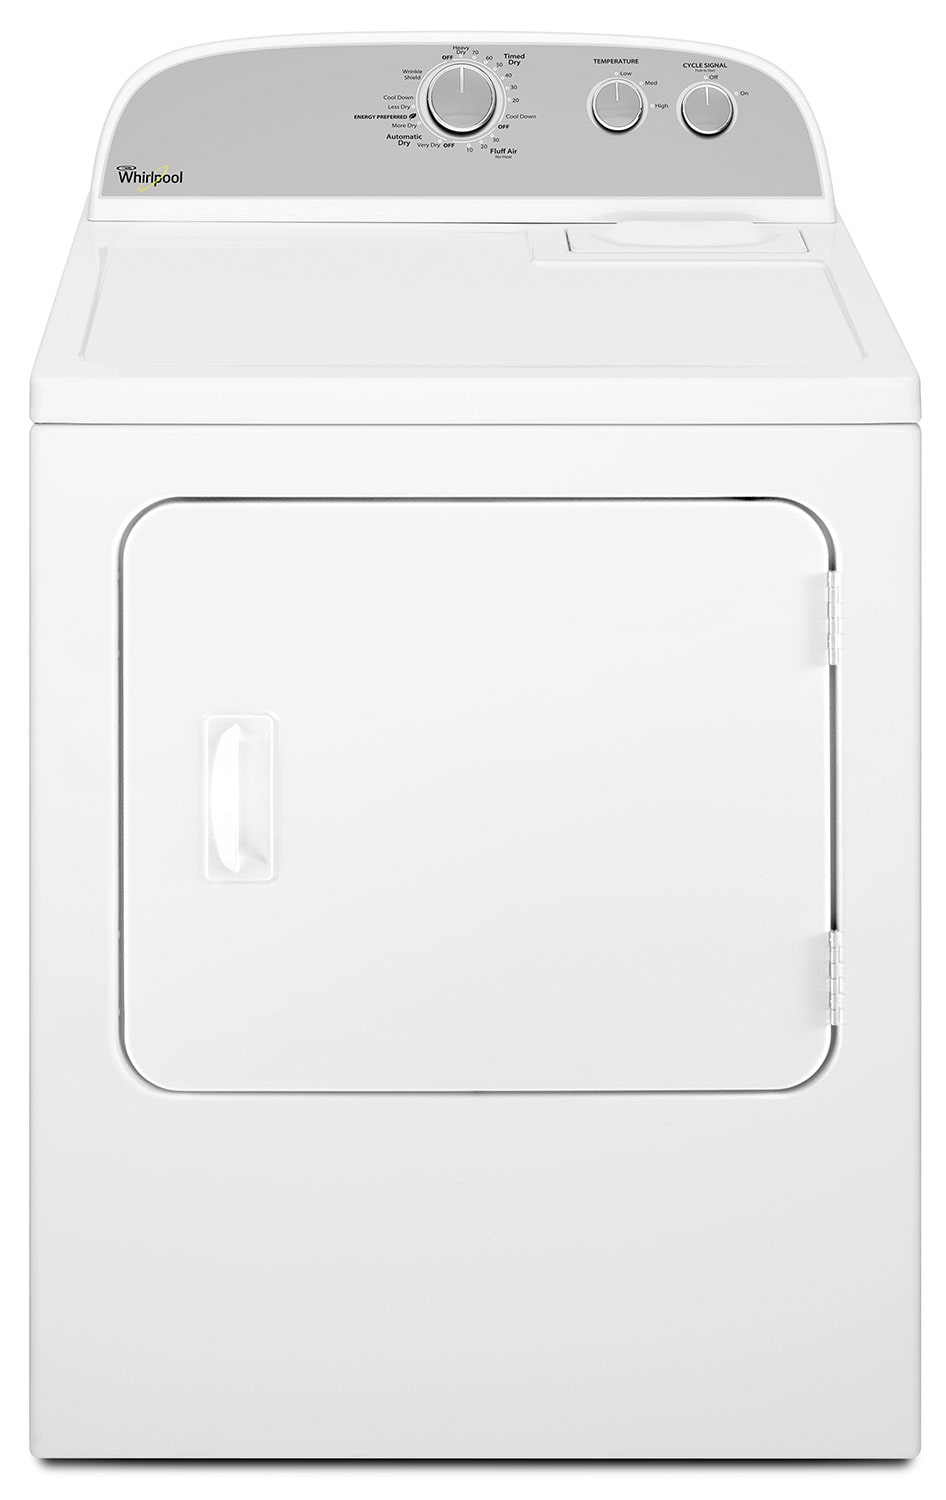 Washers and Dryers - Whirlpool 7.0 Cu. Ft. Electric Dryer – YWED4815EW